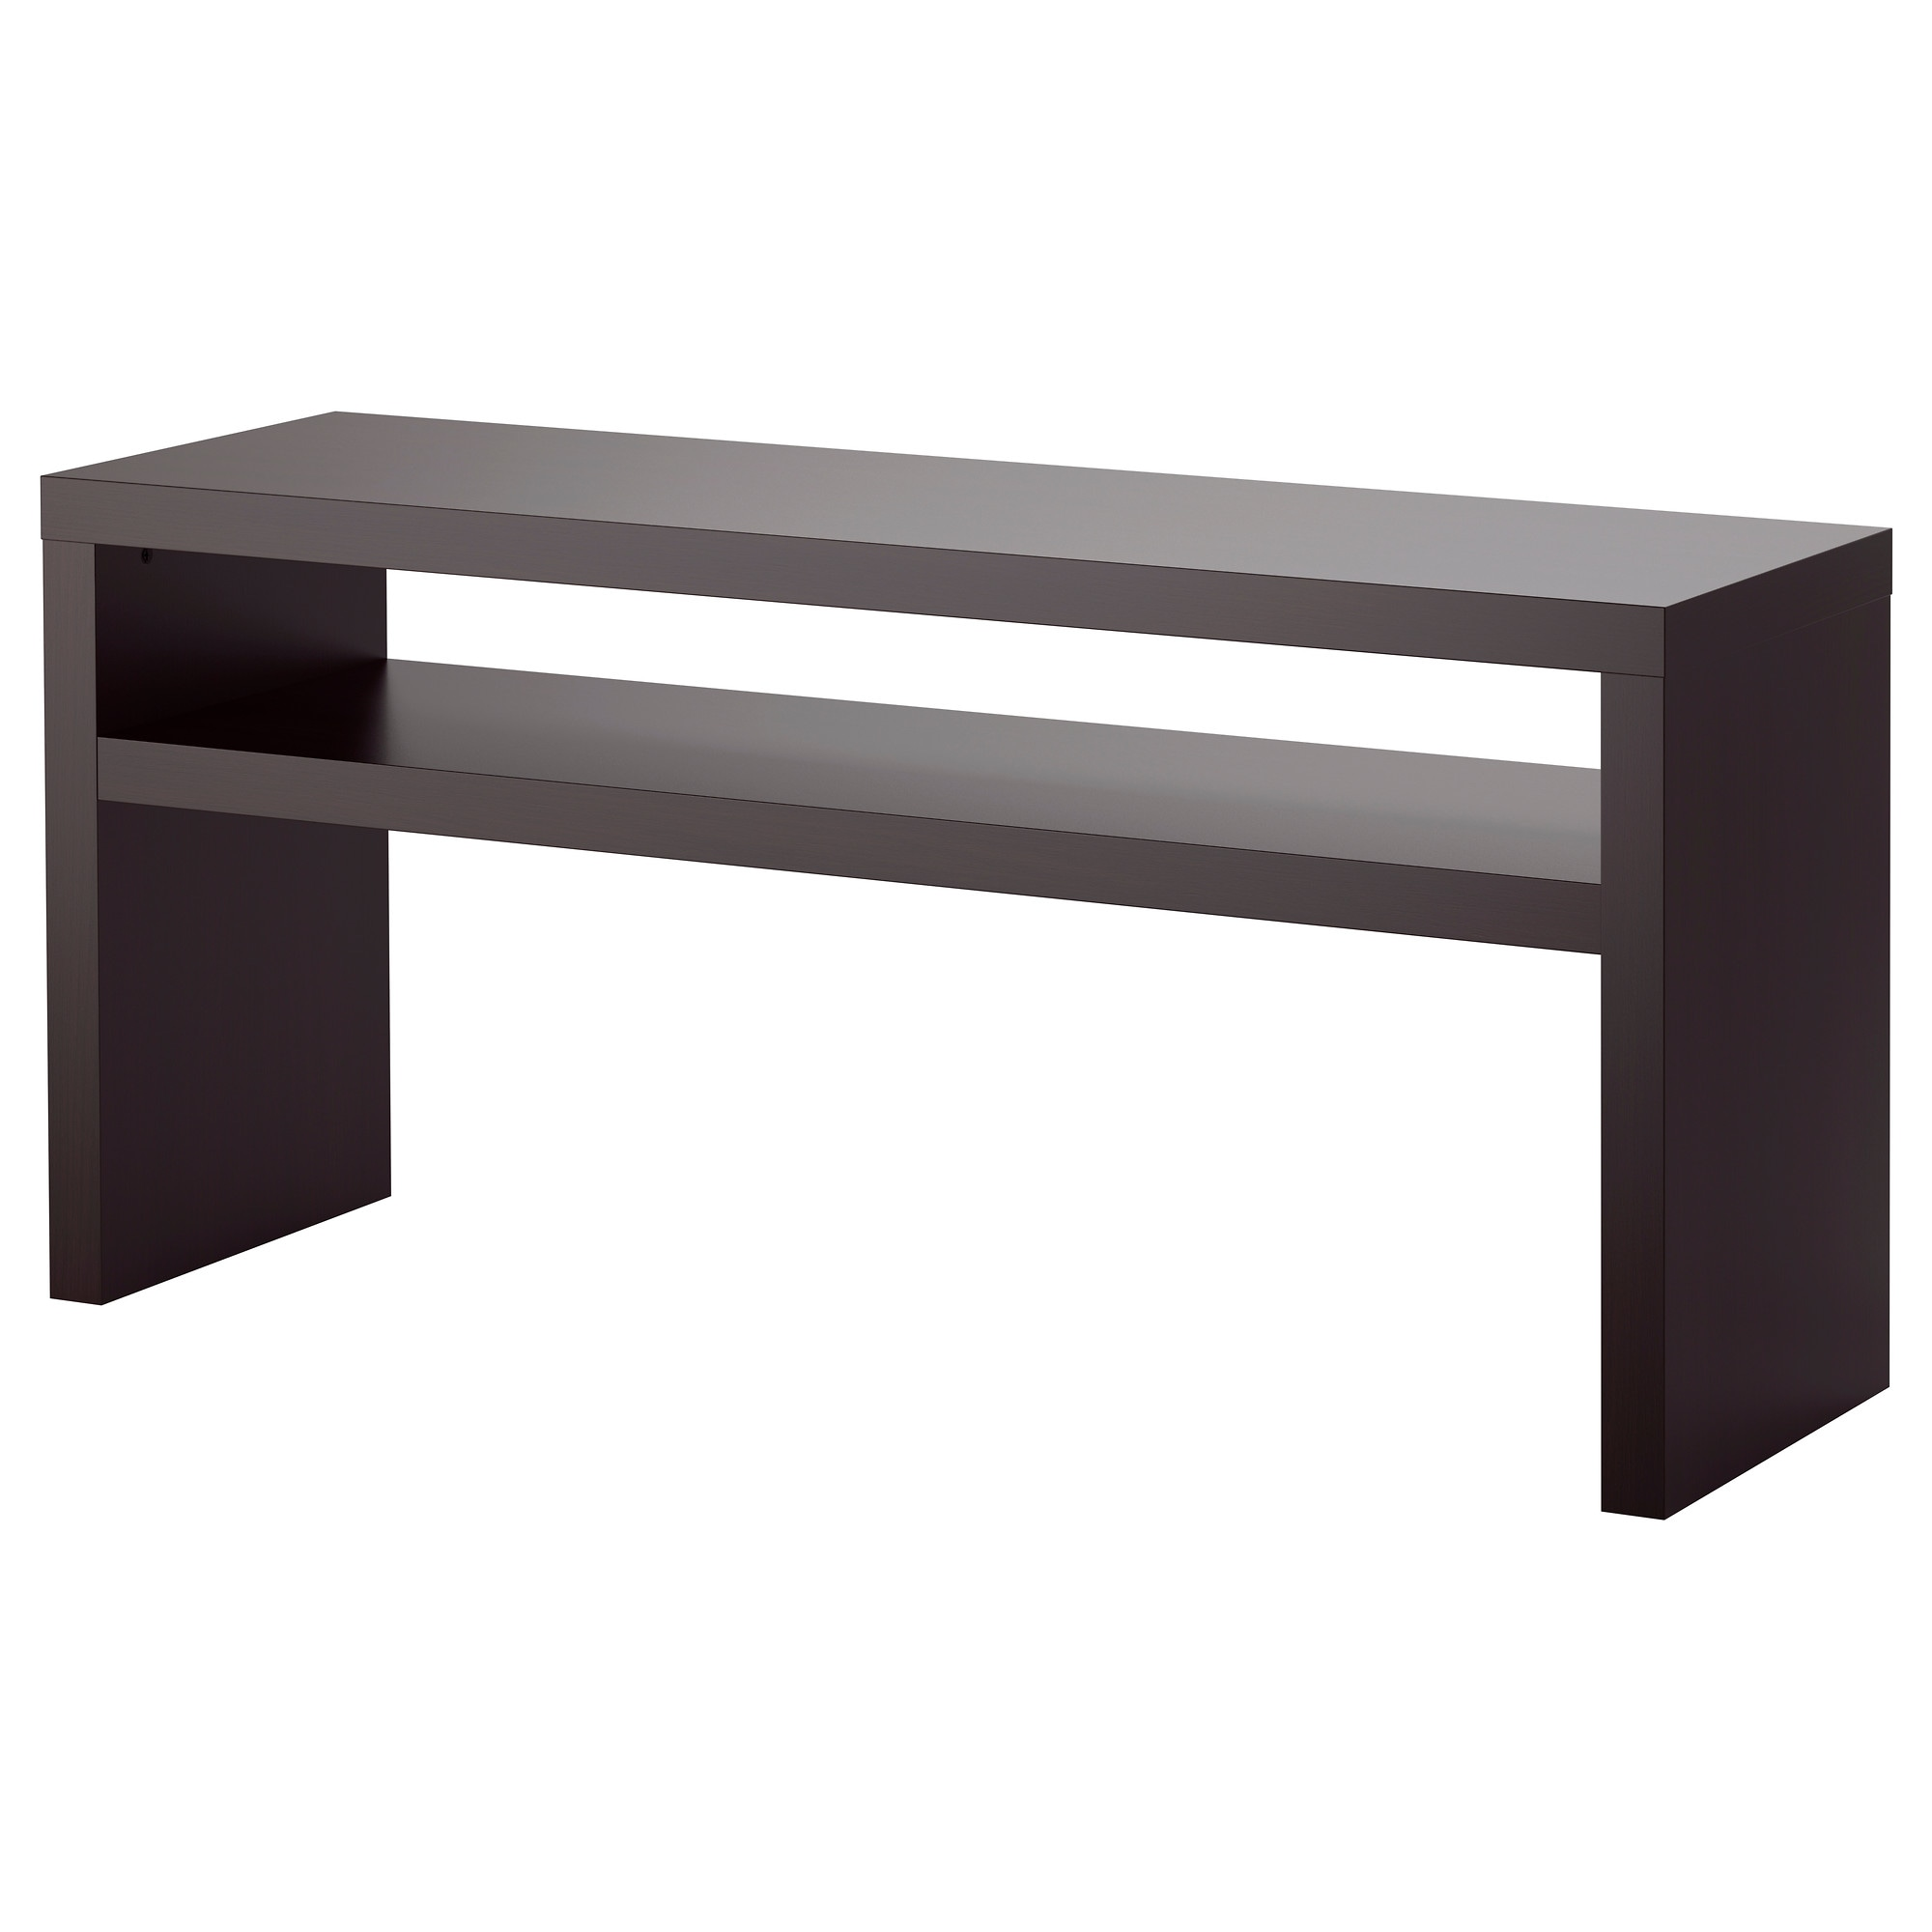 Console Tables IKEA